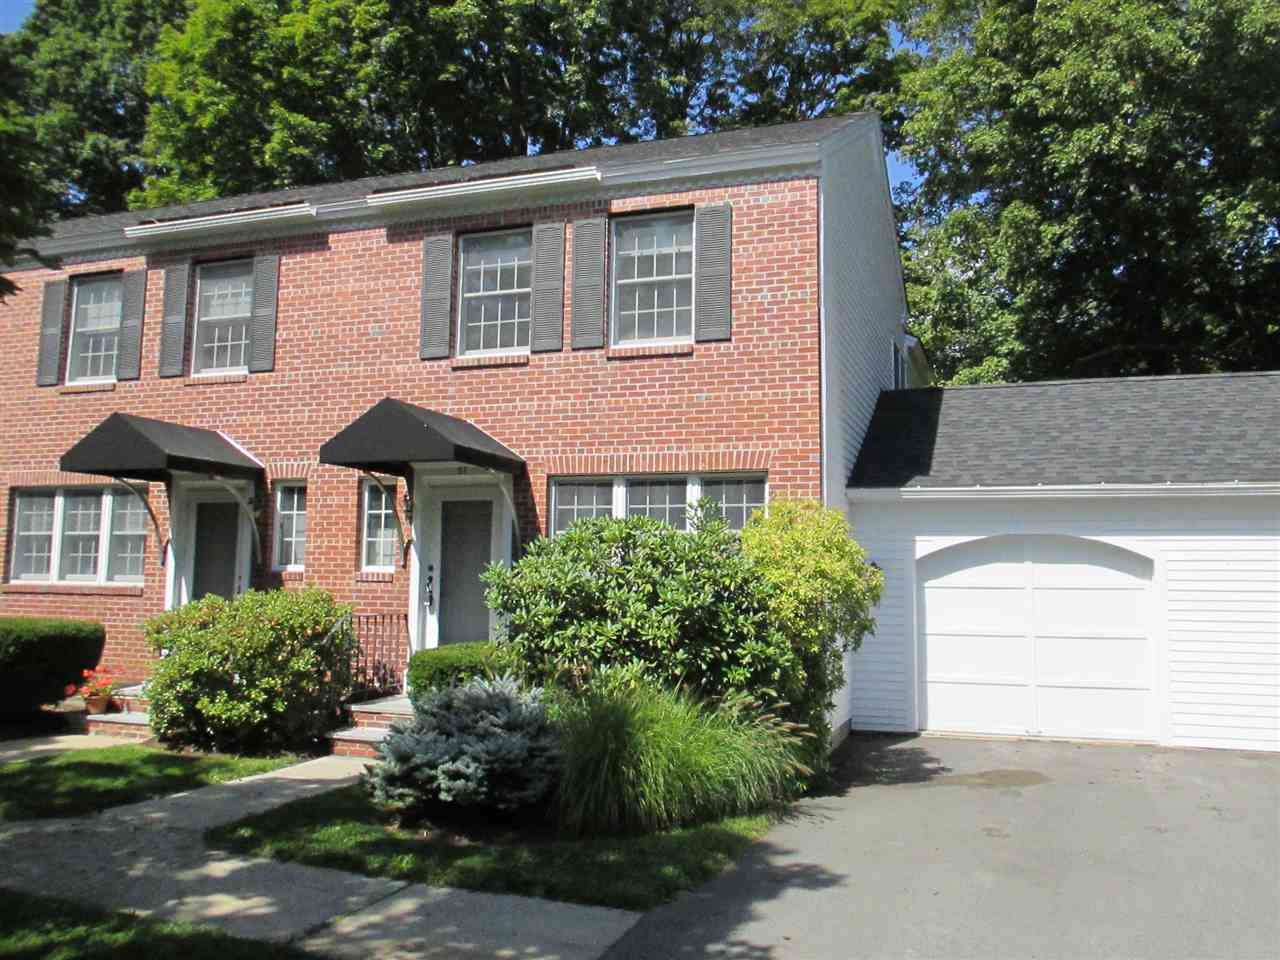 MLS 4775413: 57 Windsor Court, Keene NH